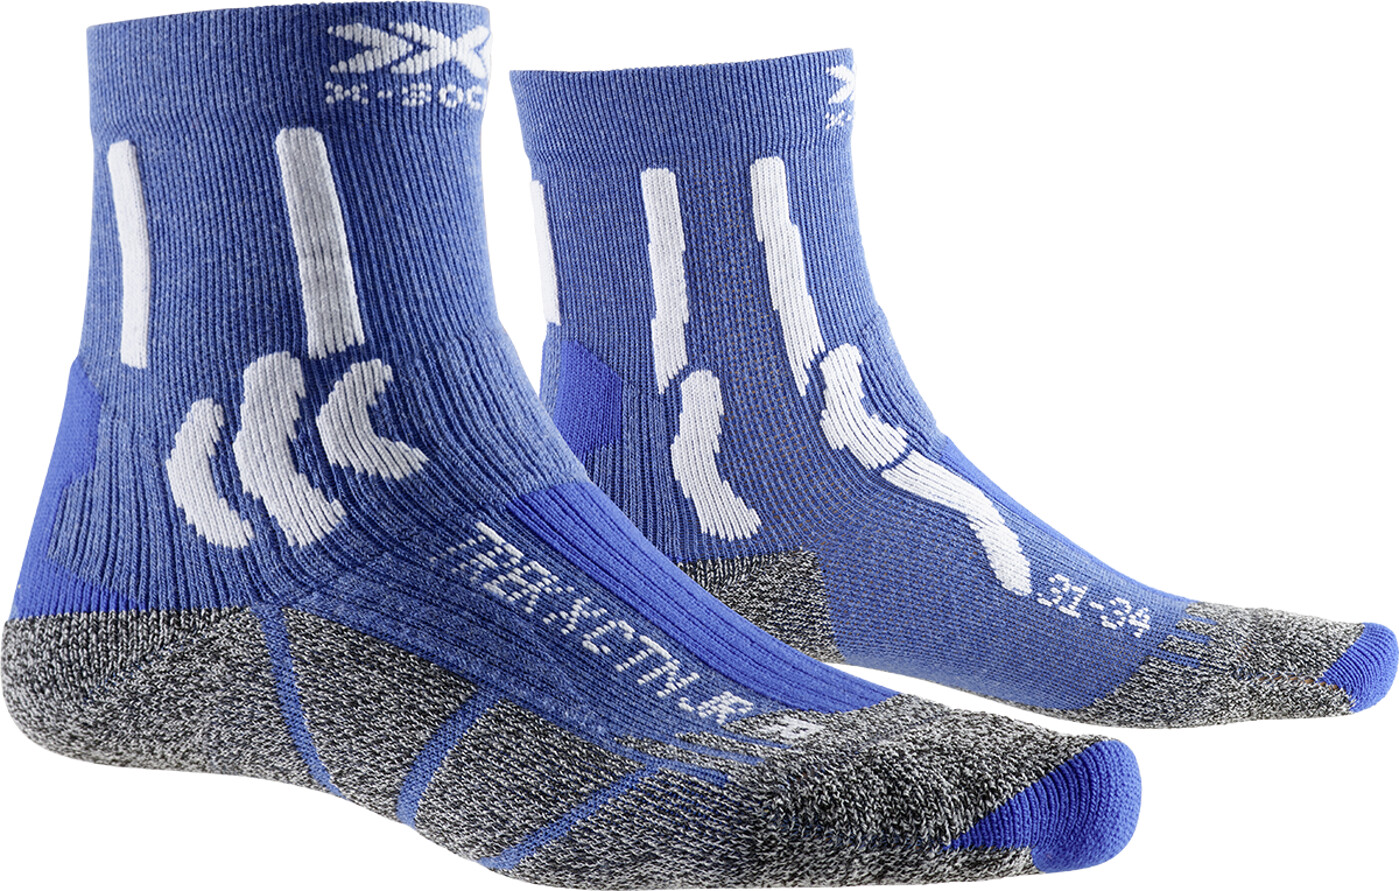 X-BIONIC TREK X COTTON JUNIOR Socken - Kinder